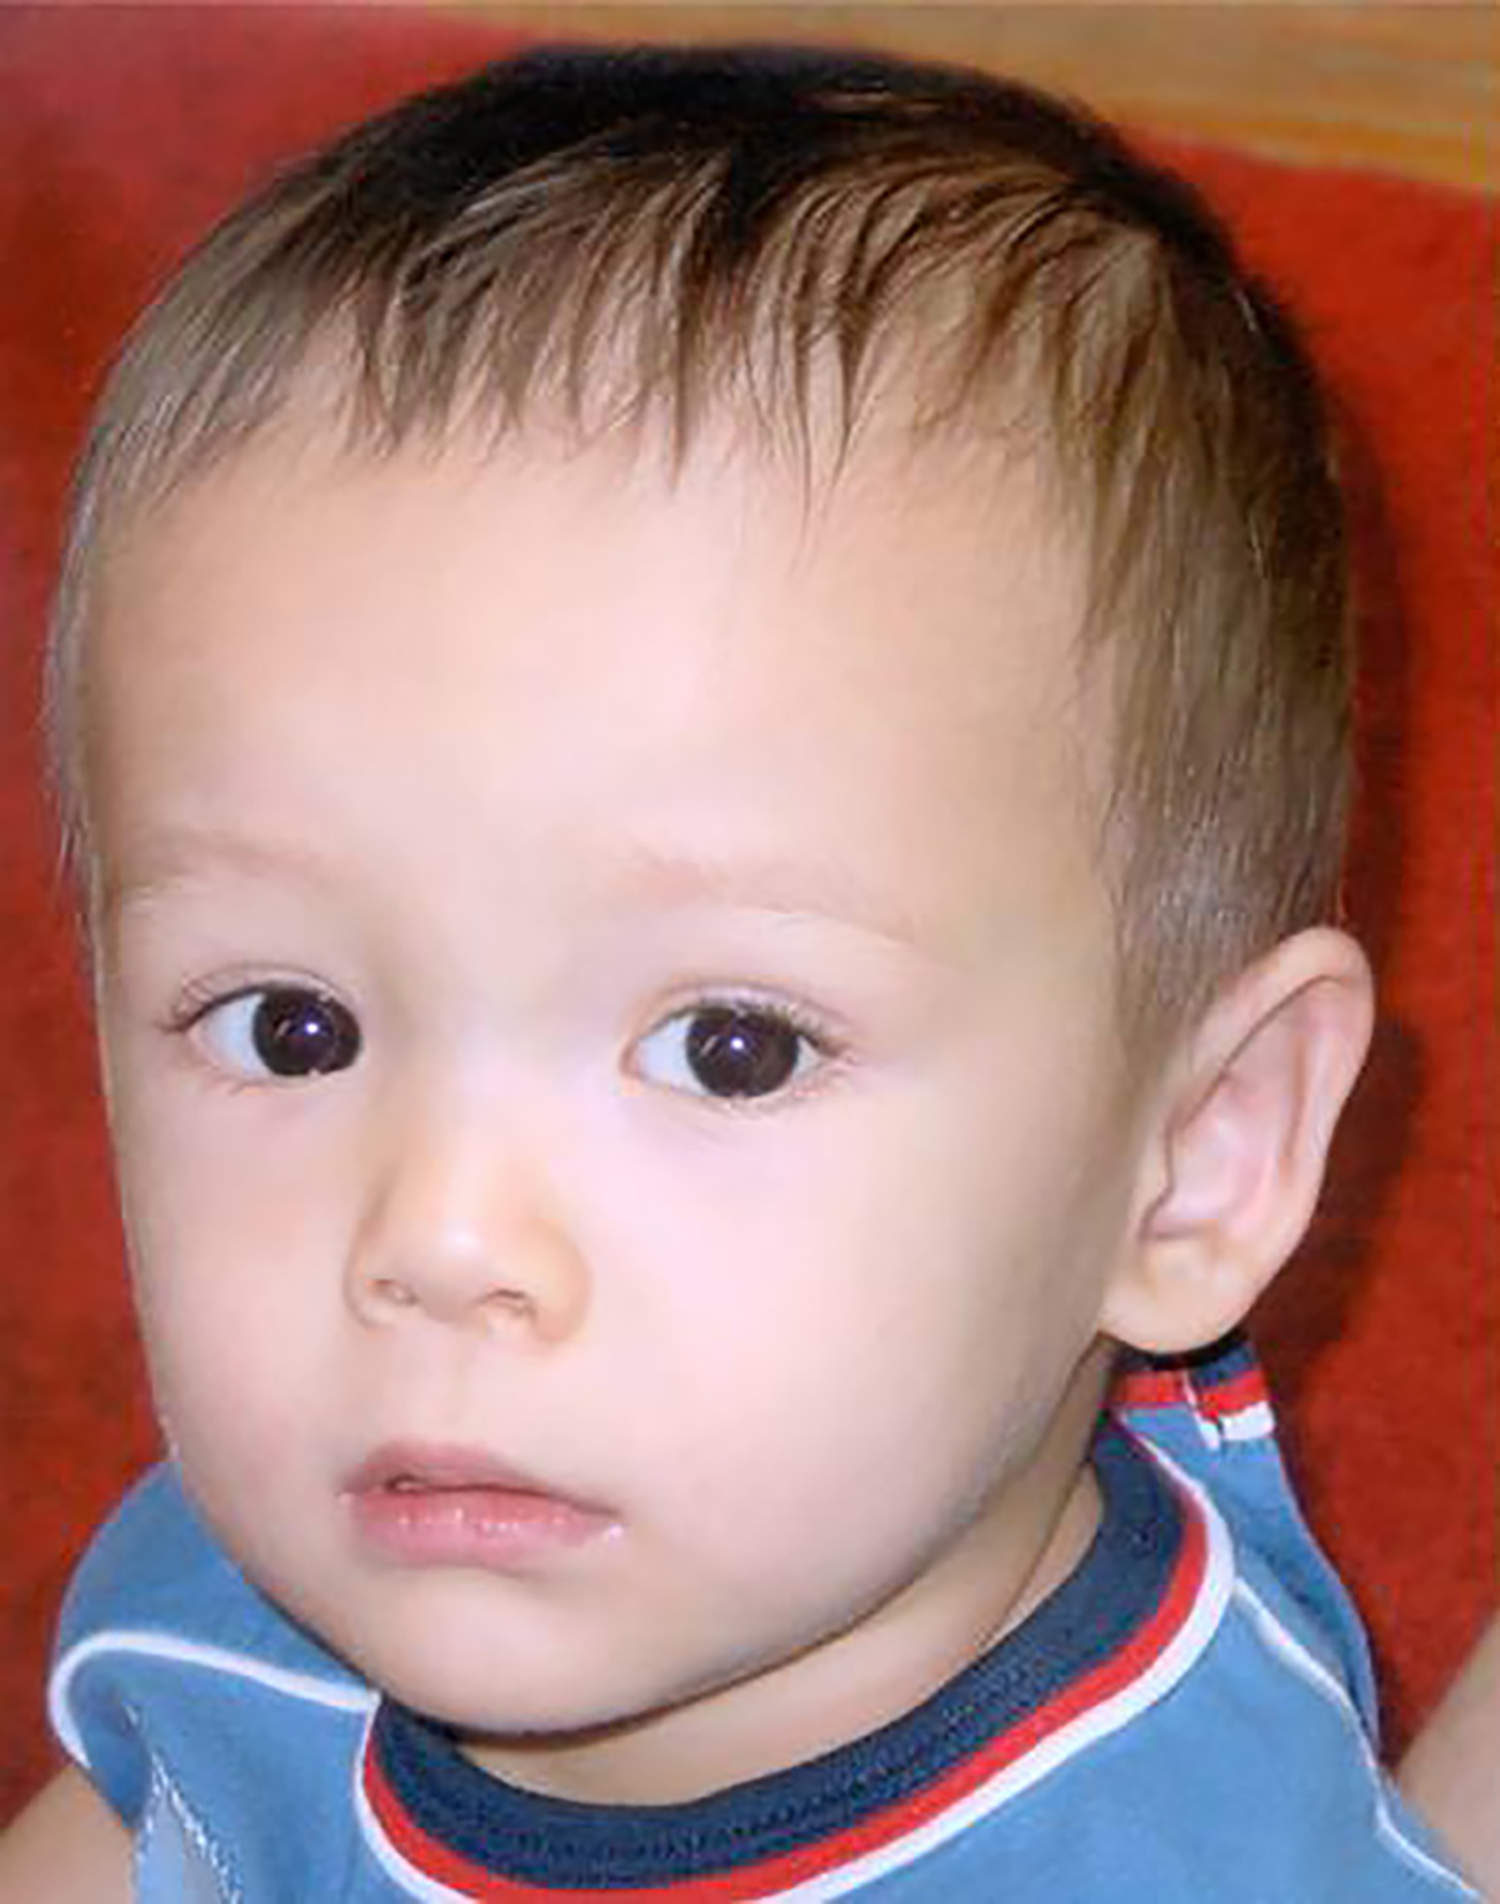 2 year old vanished